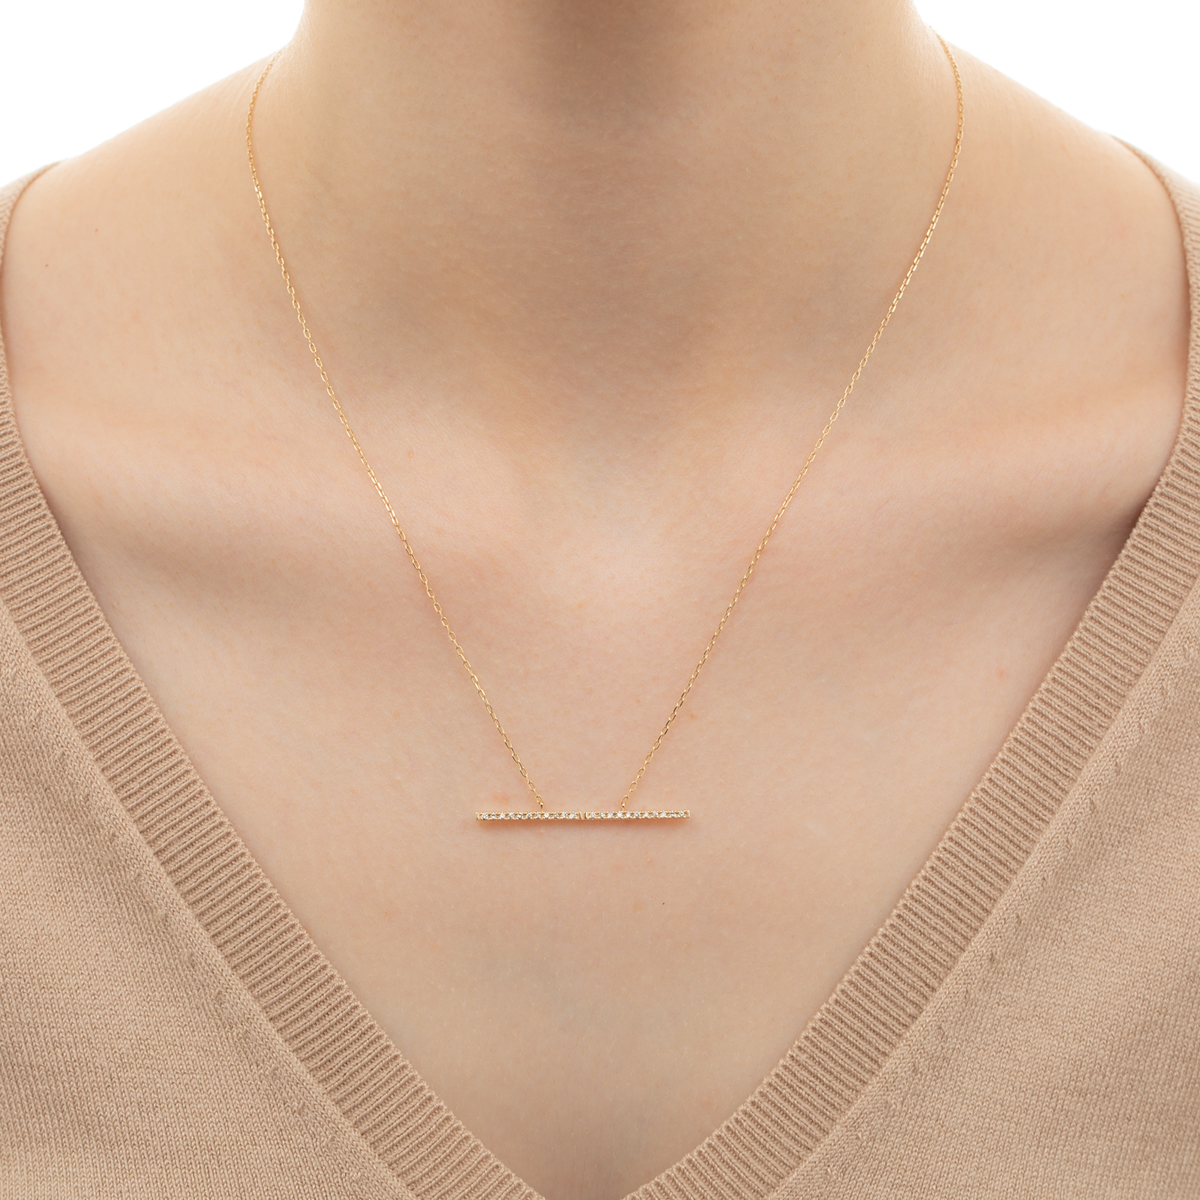 Trapeze Diamond Necklace Lsize TP01KDN Trapeze Diamond Necklace ダイヤ ダイヤモンド トラペーズ ネックレス